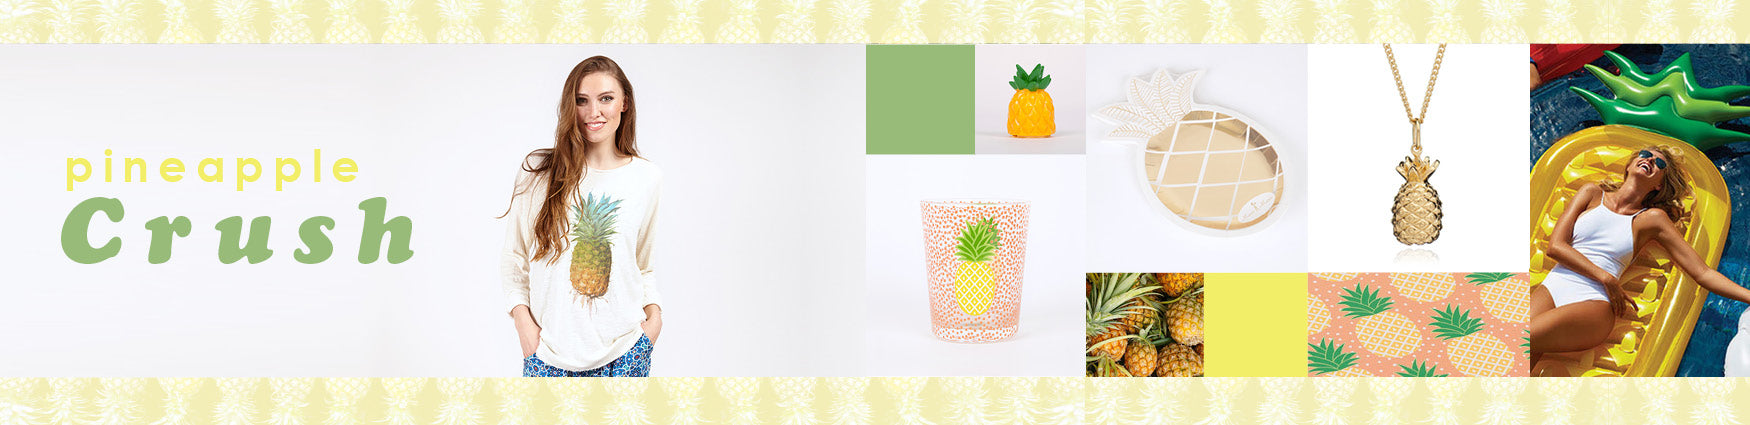 Pineapple crush edit available from Roo's Beach UK